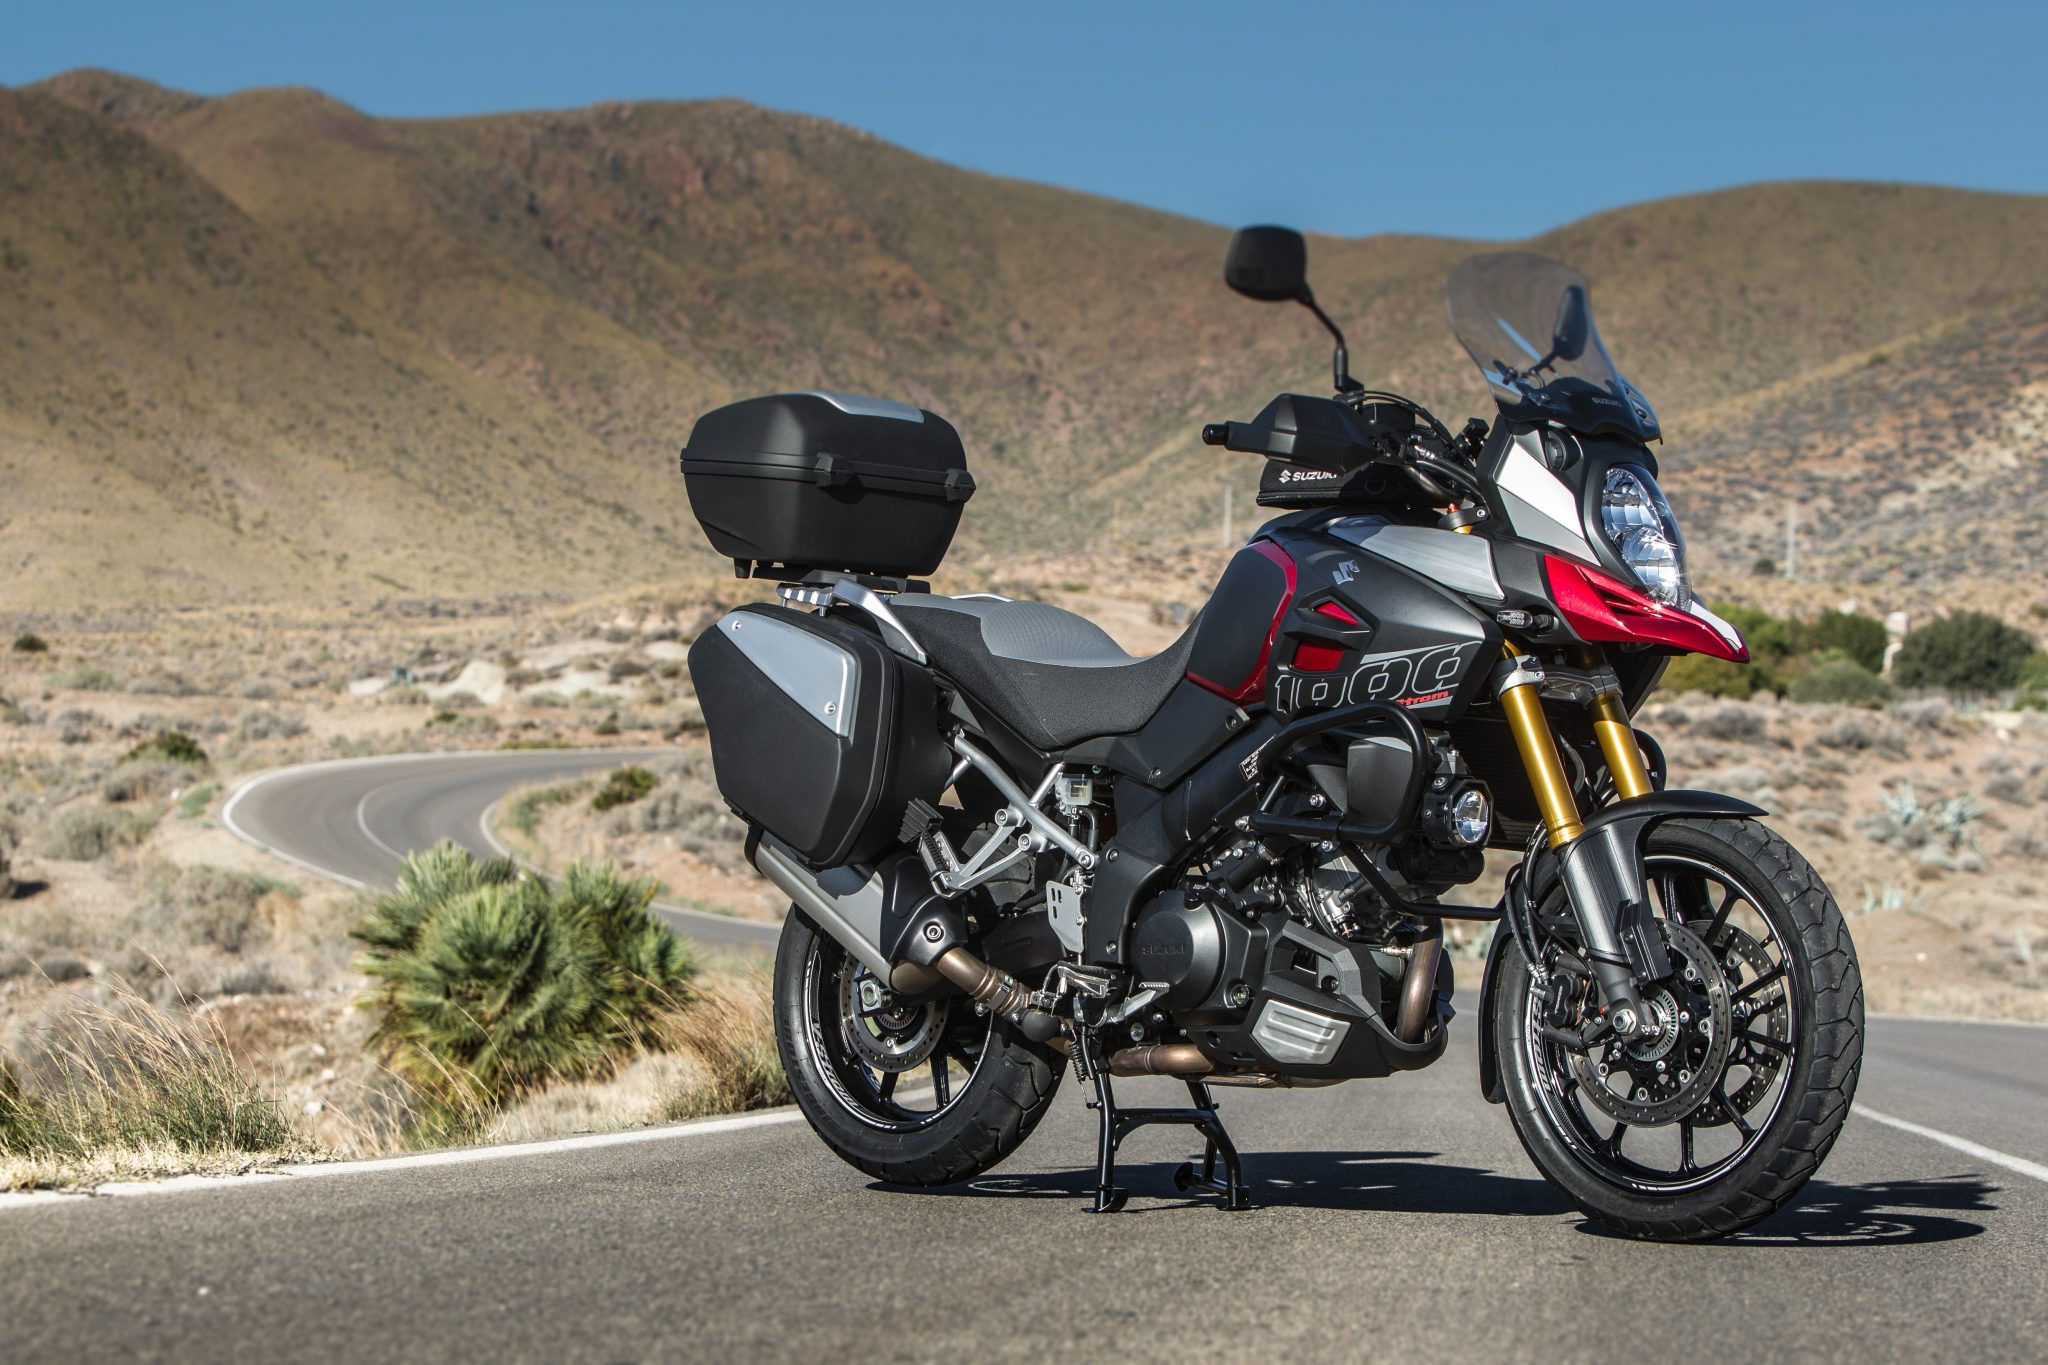 v-strom 1000 launched on suzuki riderplan pcp - bhp bikes